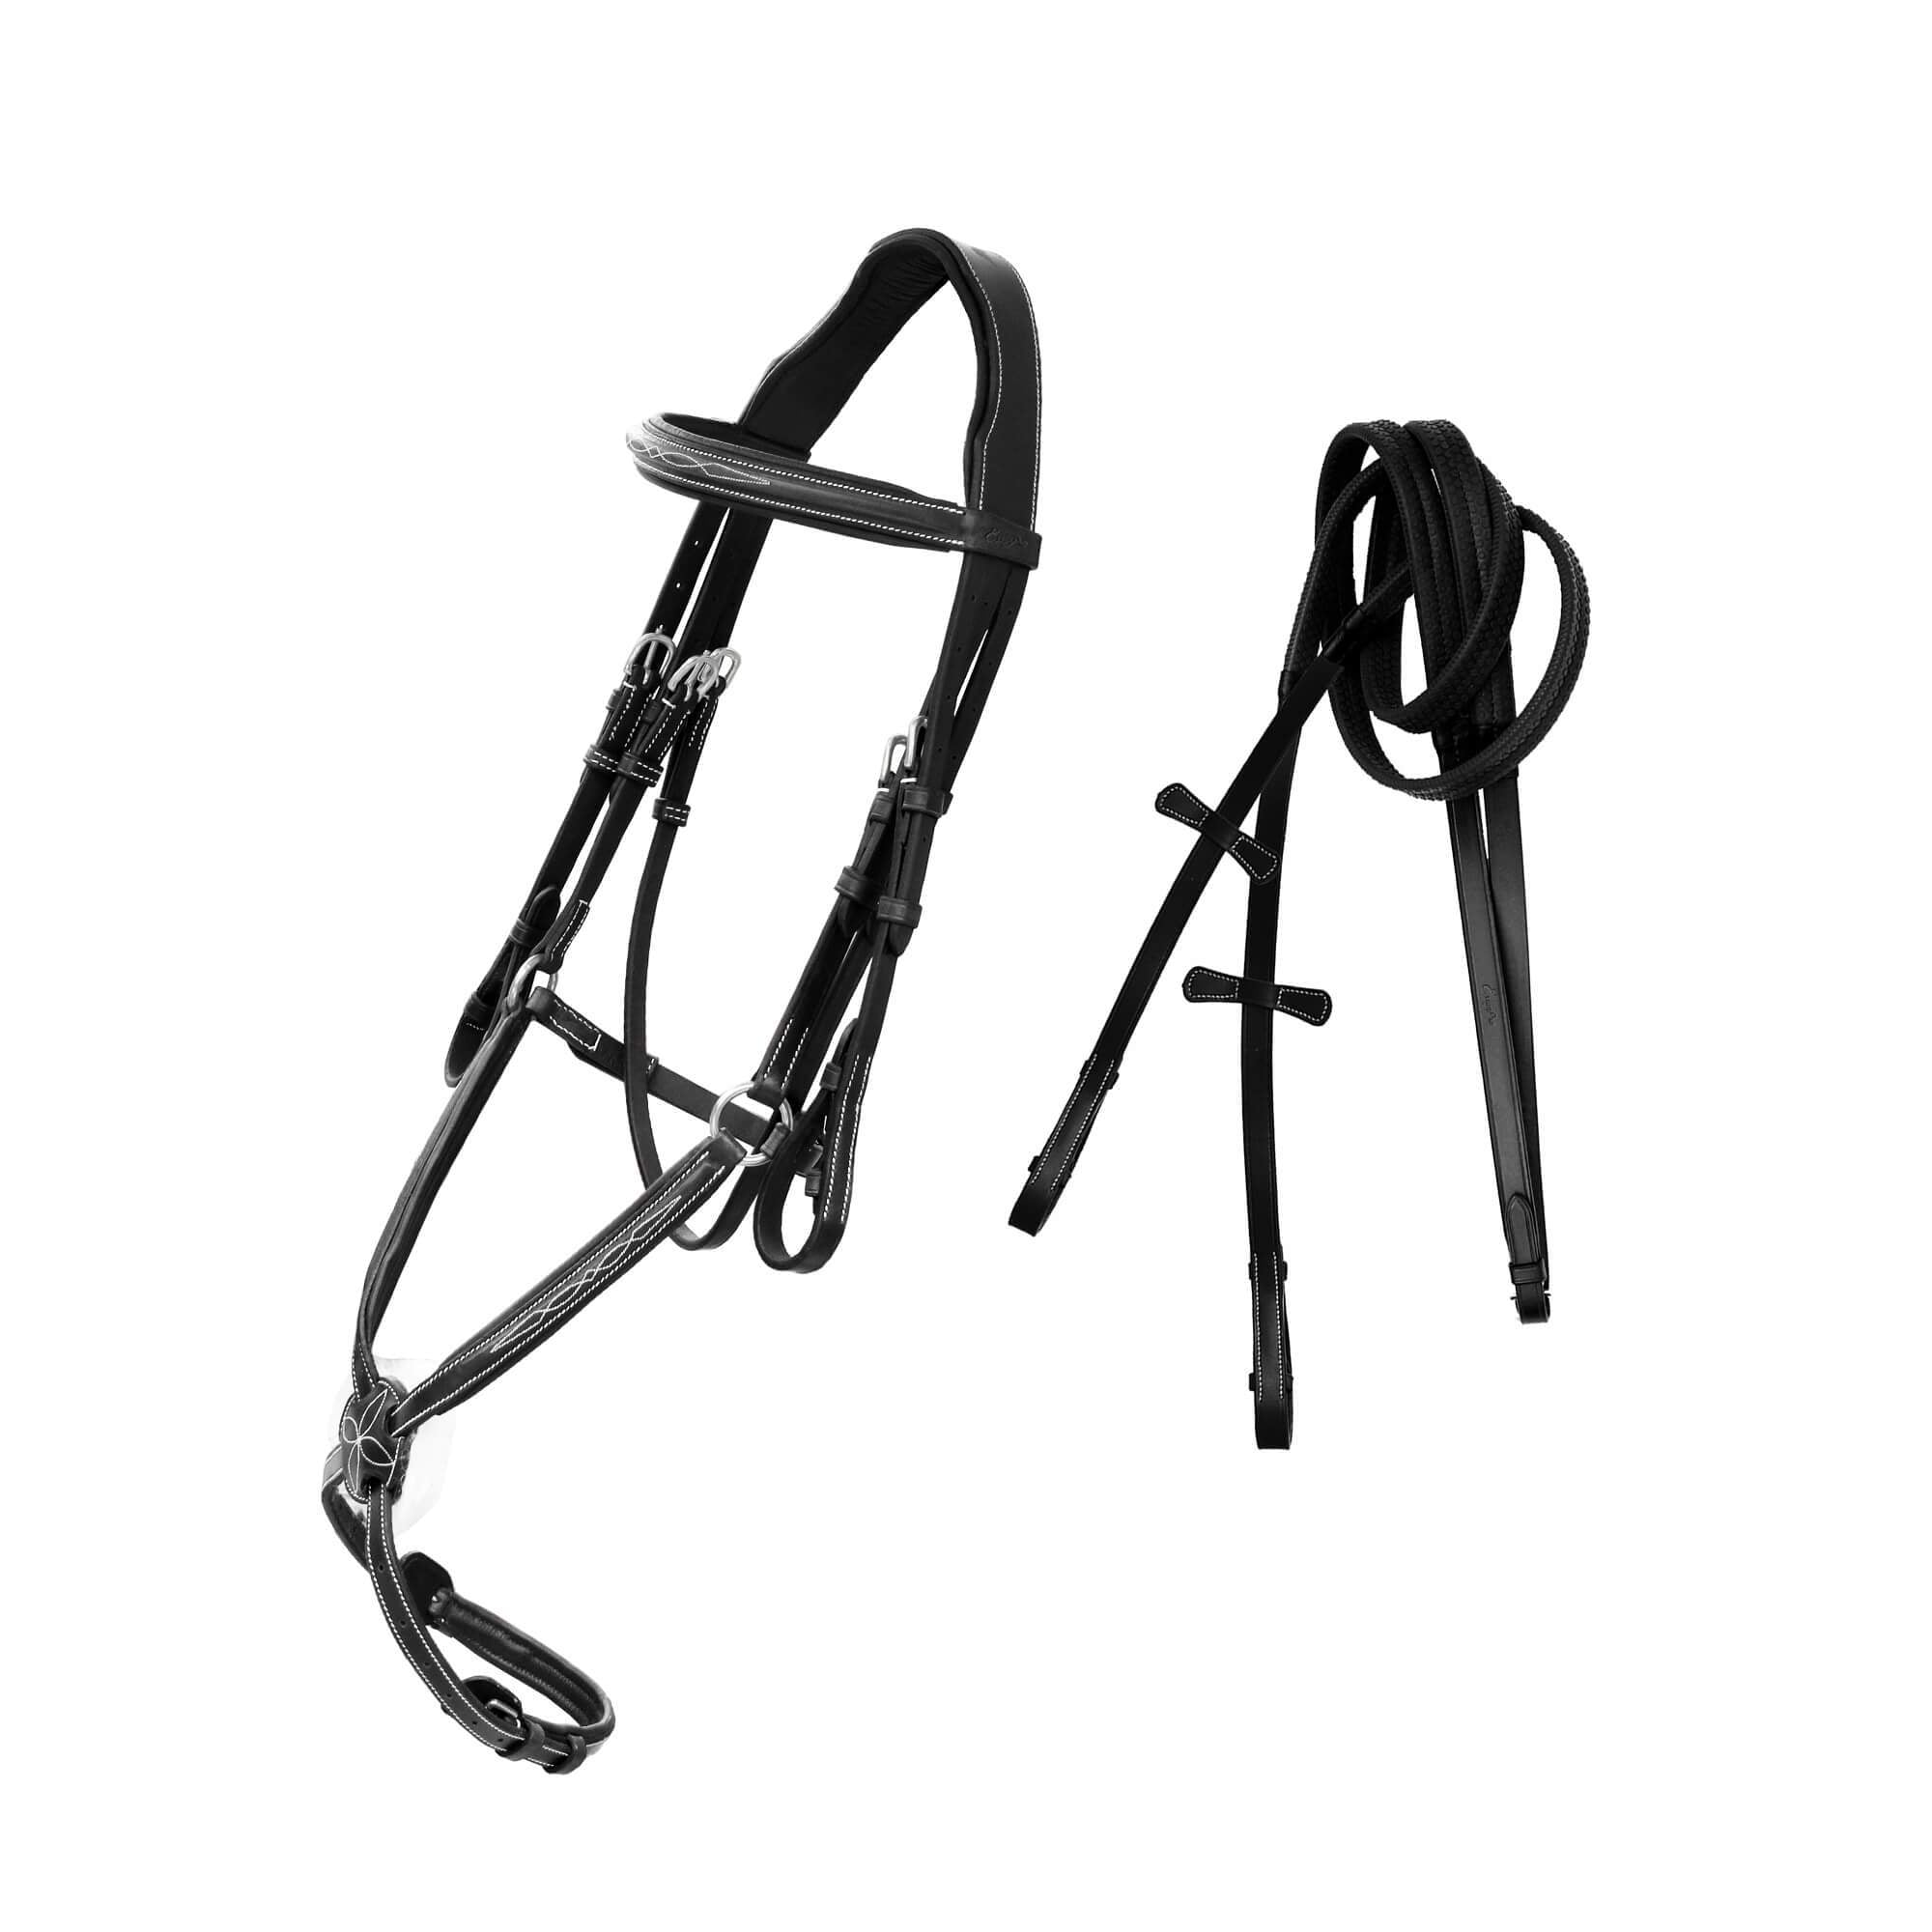 English Bridles-ExionPro Designer Fancy Stitched Figure 8 Noseband Mono Crown Piece English Bridle With Rubber Rein-Bridles and Reins